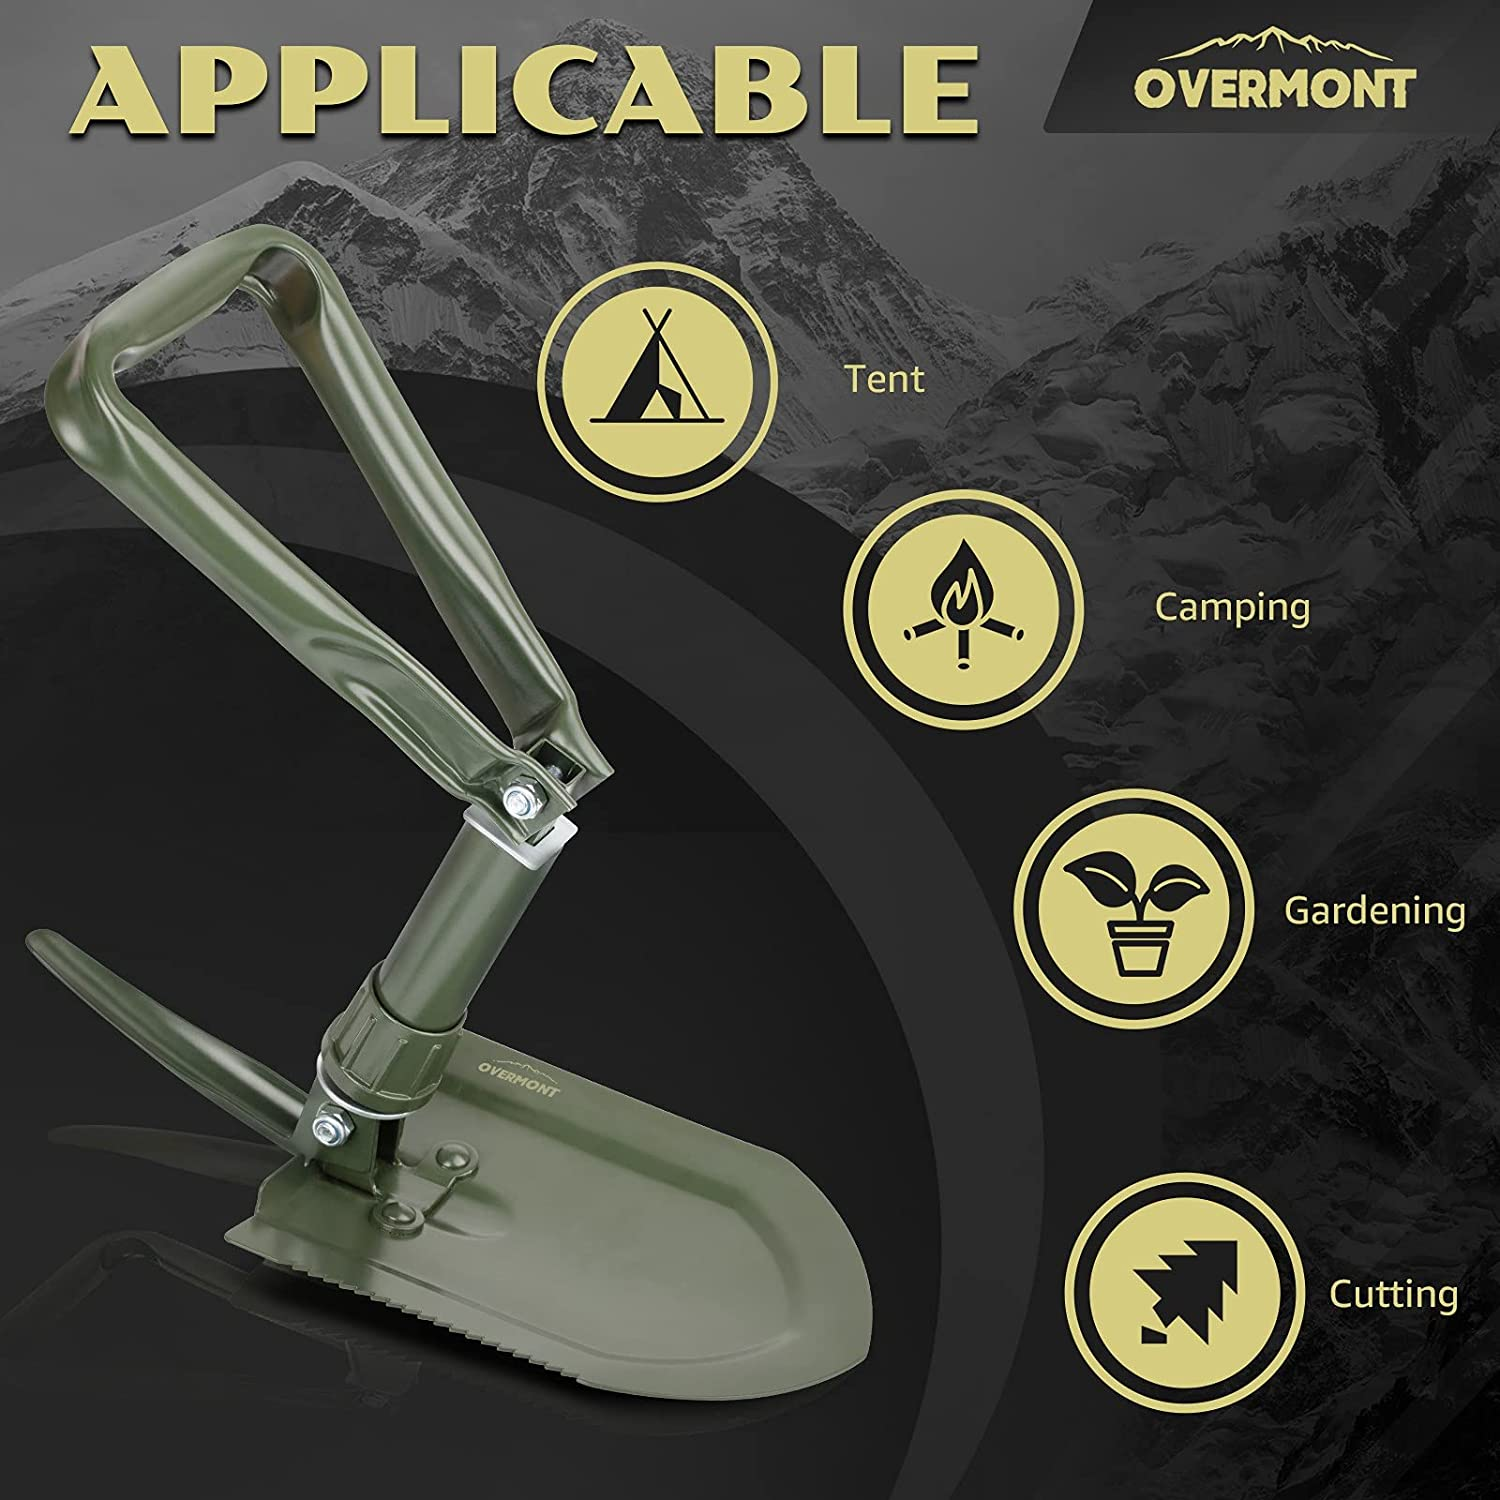 Overmont Military Folding Camping Shovel High Carbon Steel Entrenching Tool Tri-fold Handle Shovel with Carrying Pouch Green : Sports & Outdoors